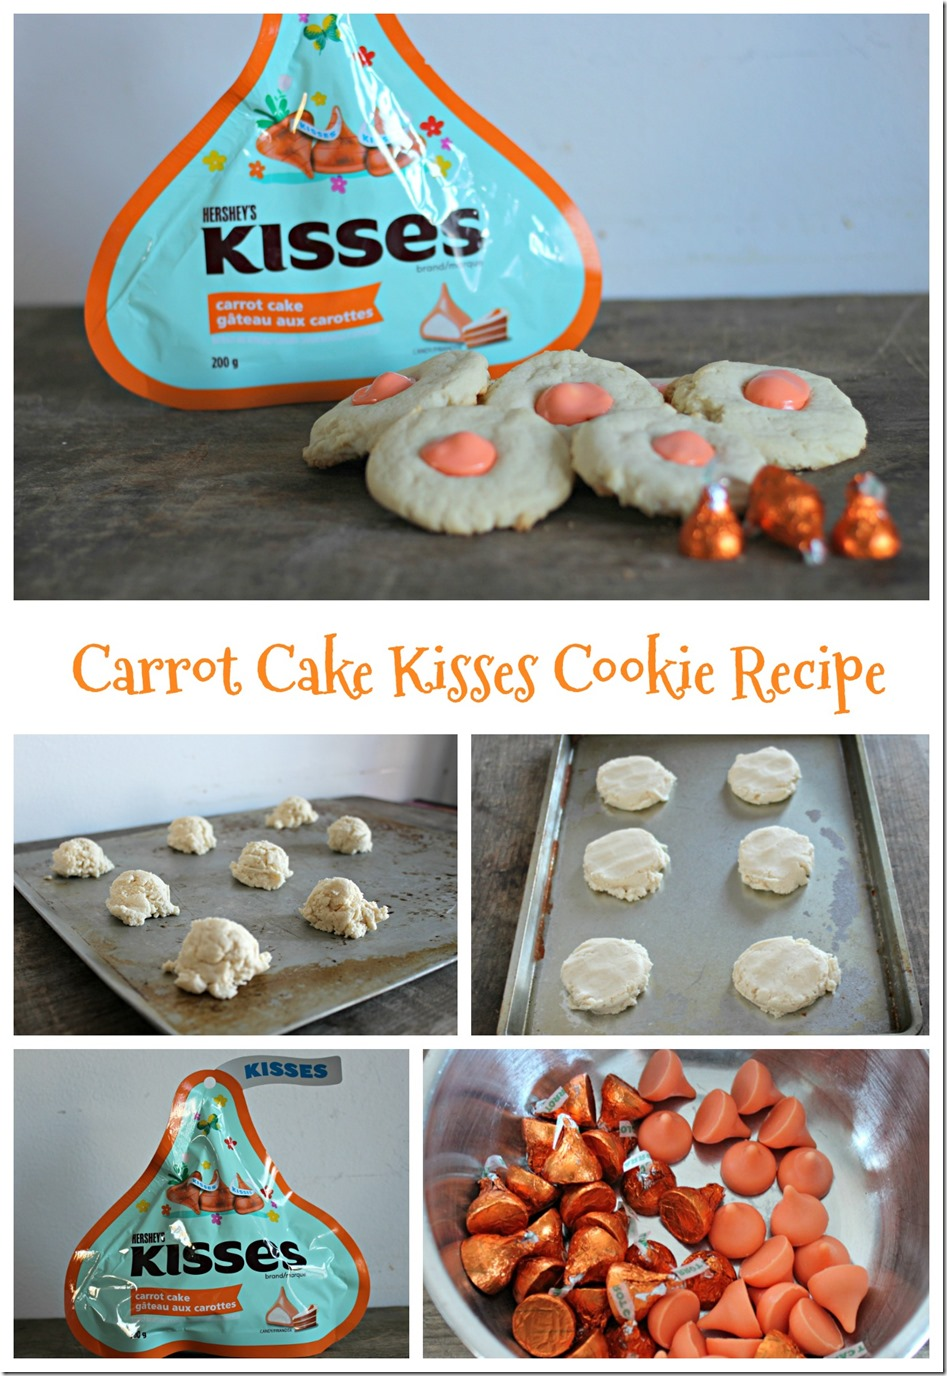 Carrot Cake Kisses Cookie Recipe